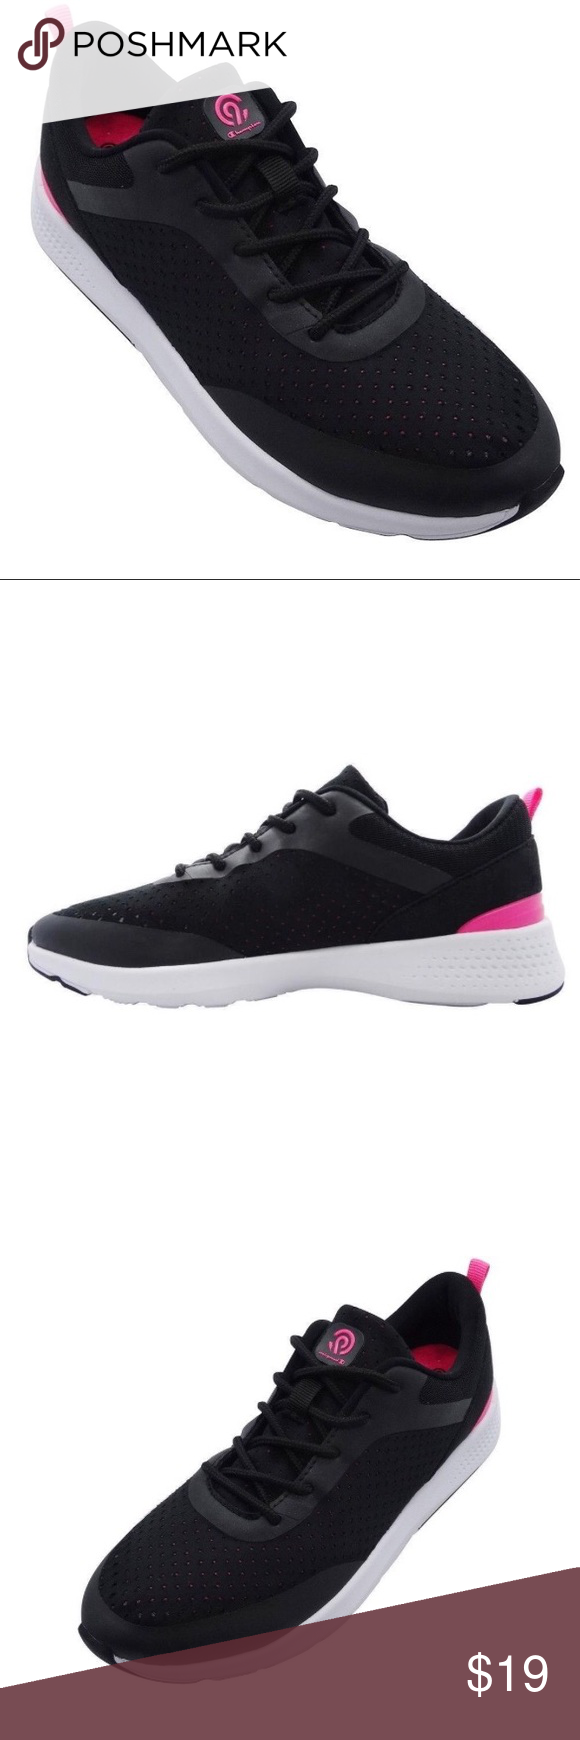 7a83a5fc95869 C9 champion black womens athletic shoes size 9 C9 Champion Black Women s  Paradigm 3 Performance Athletic